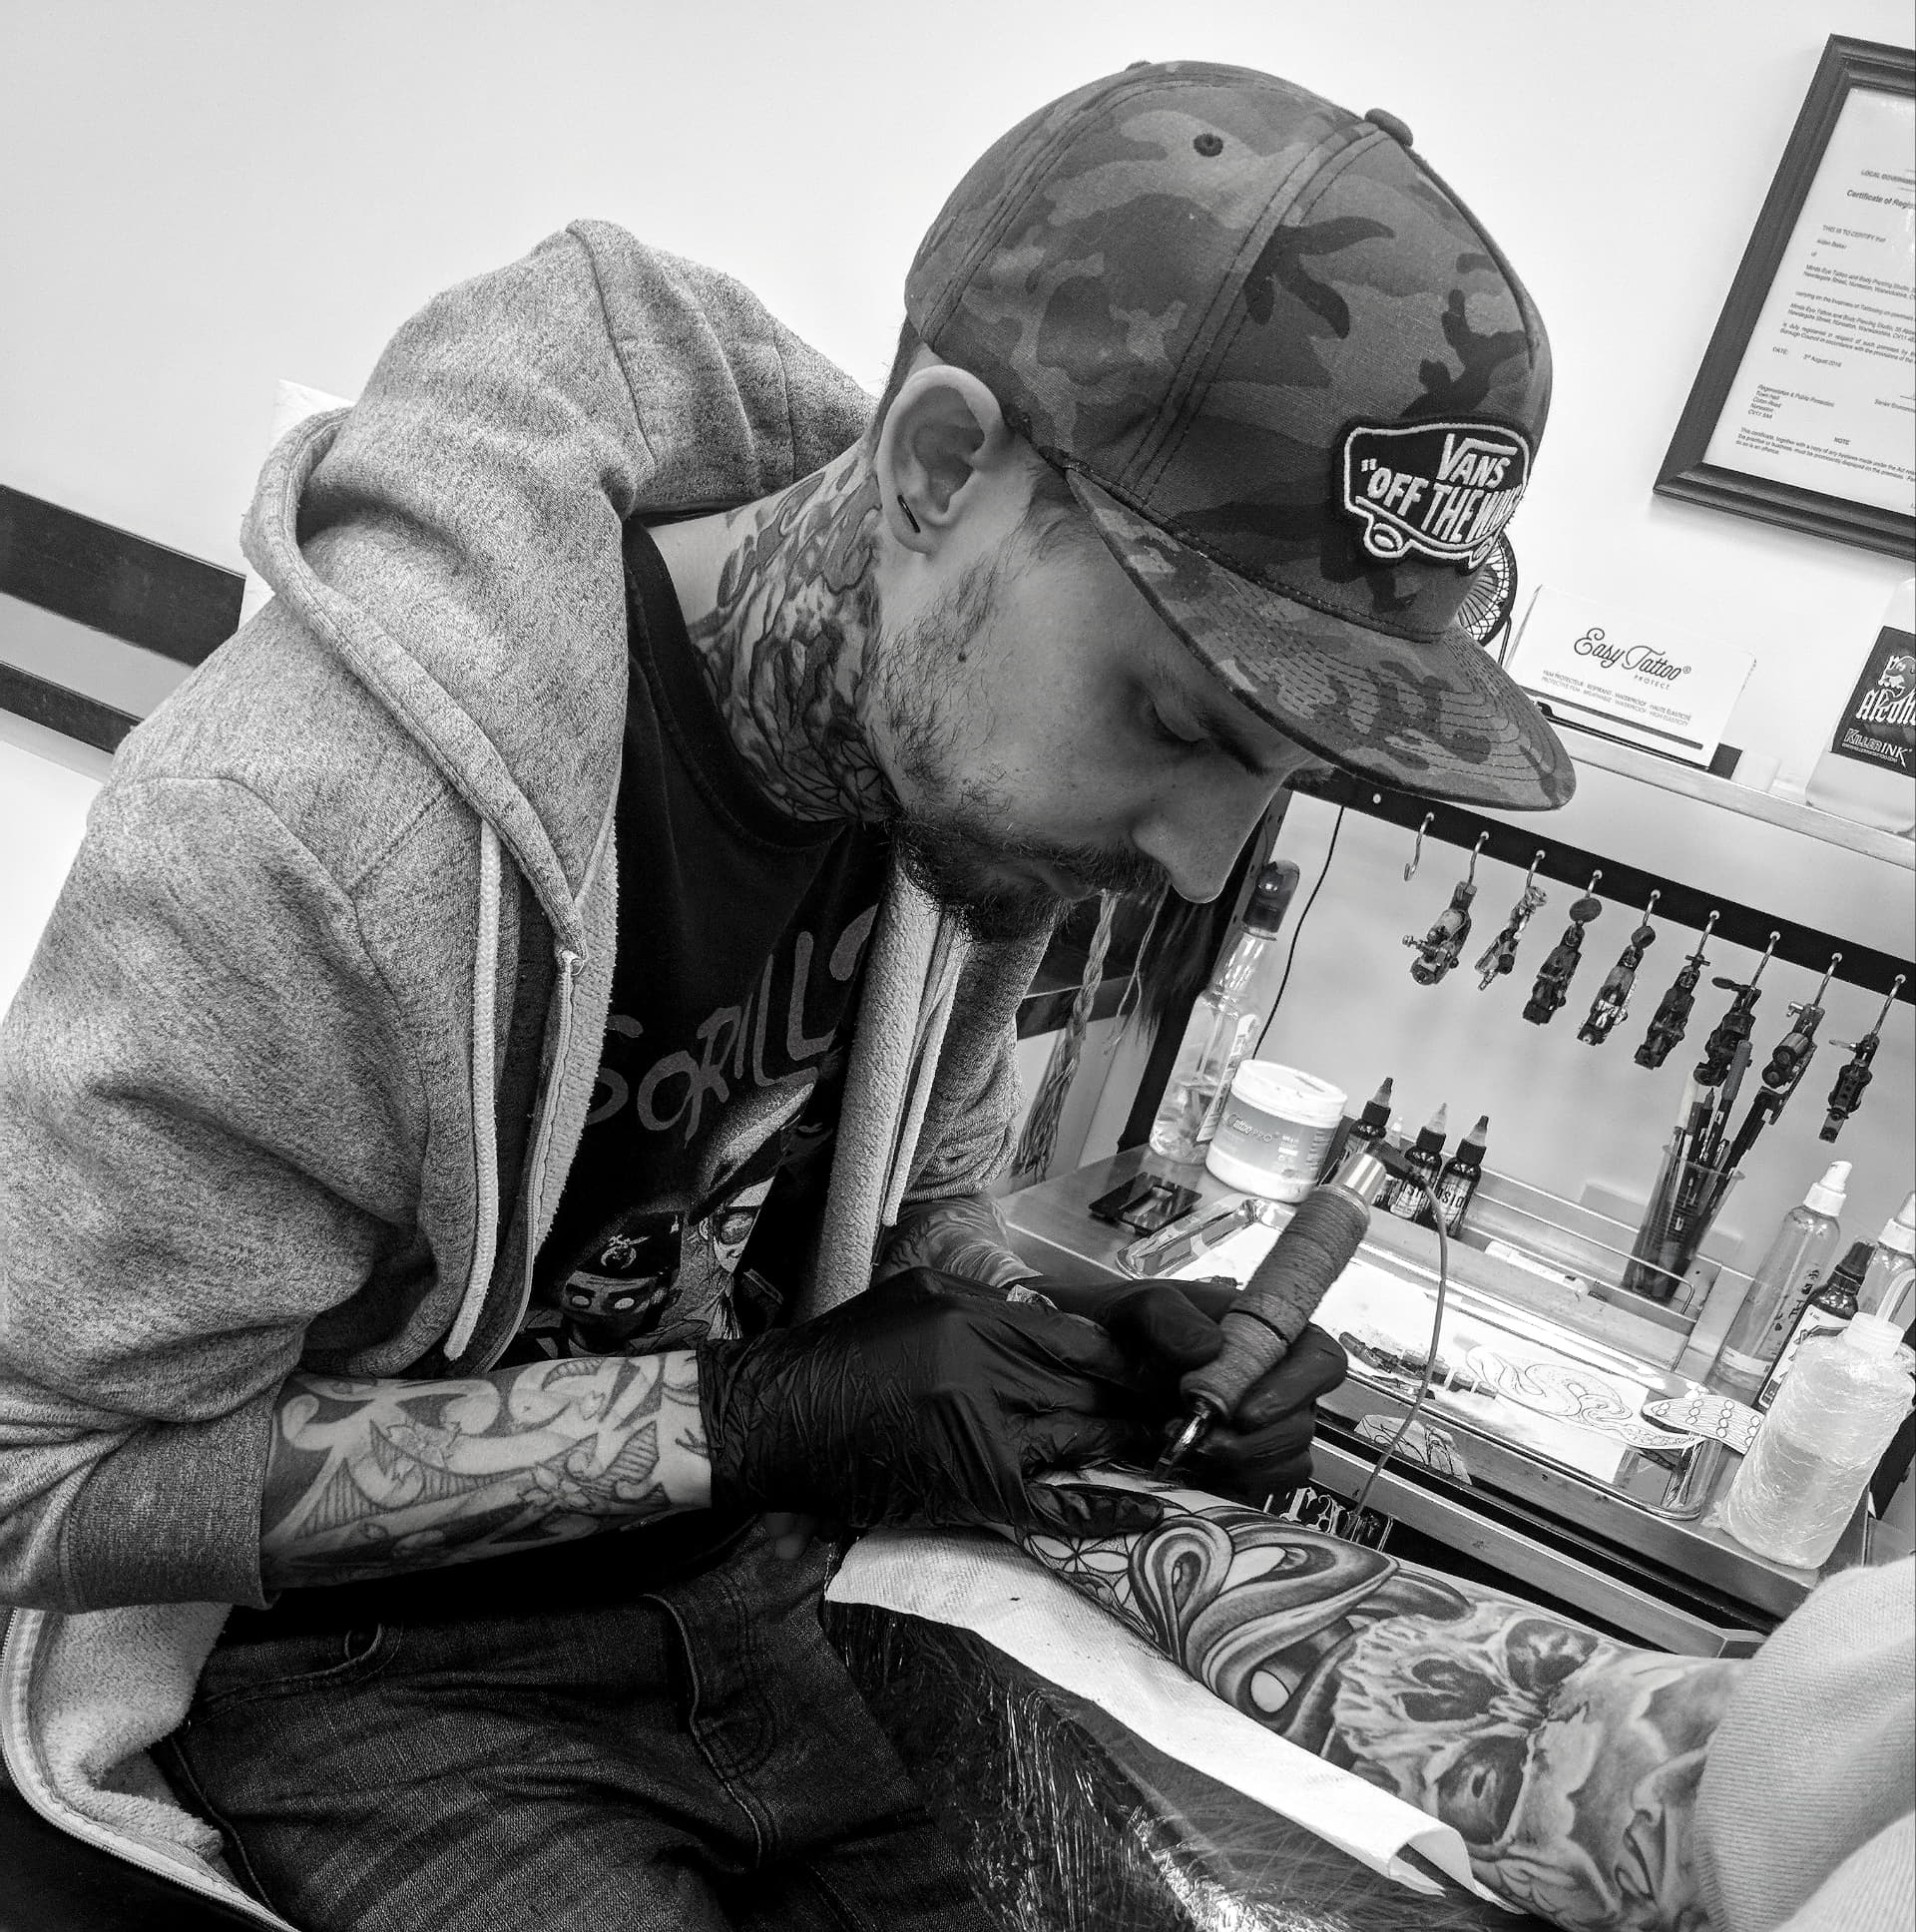 d7d9e64d4 Mindseye Tattoo Nuneaton - Custom Tattoo and Body Piercing Specialists